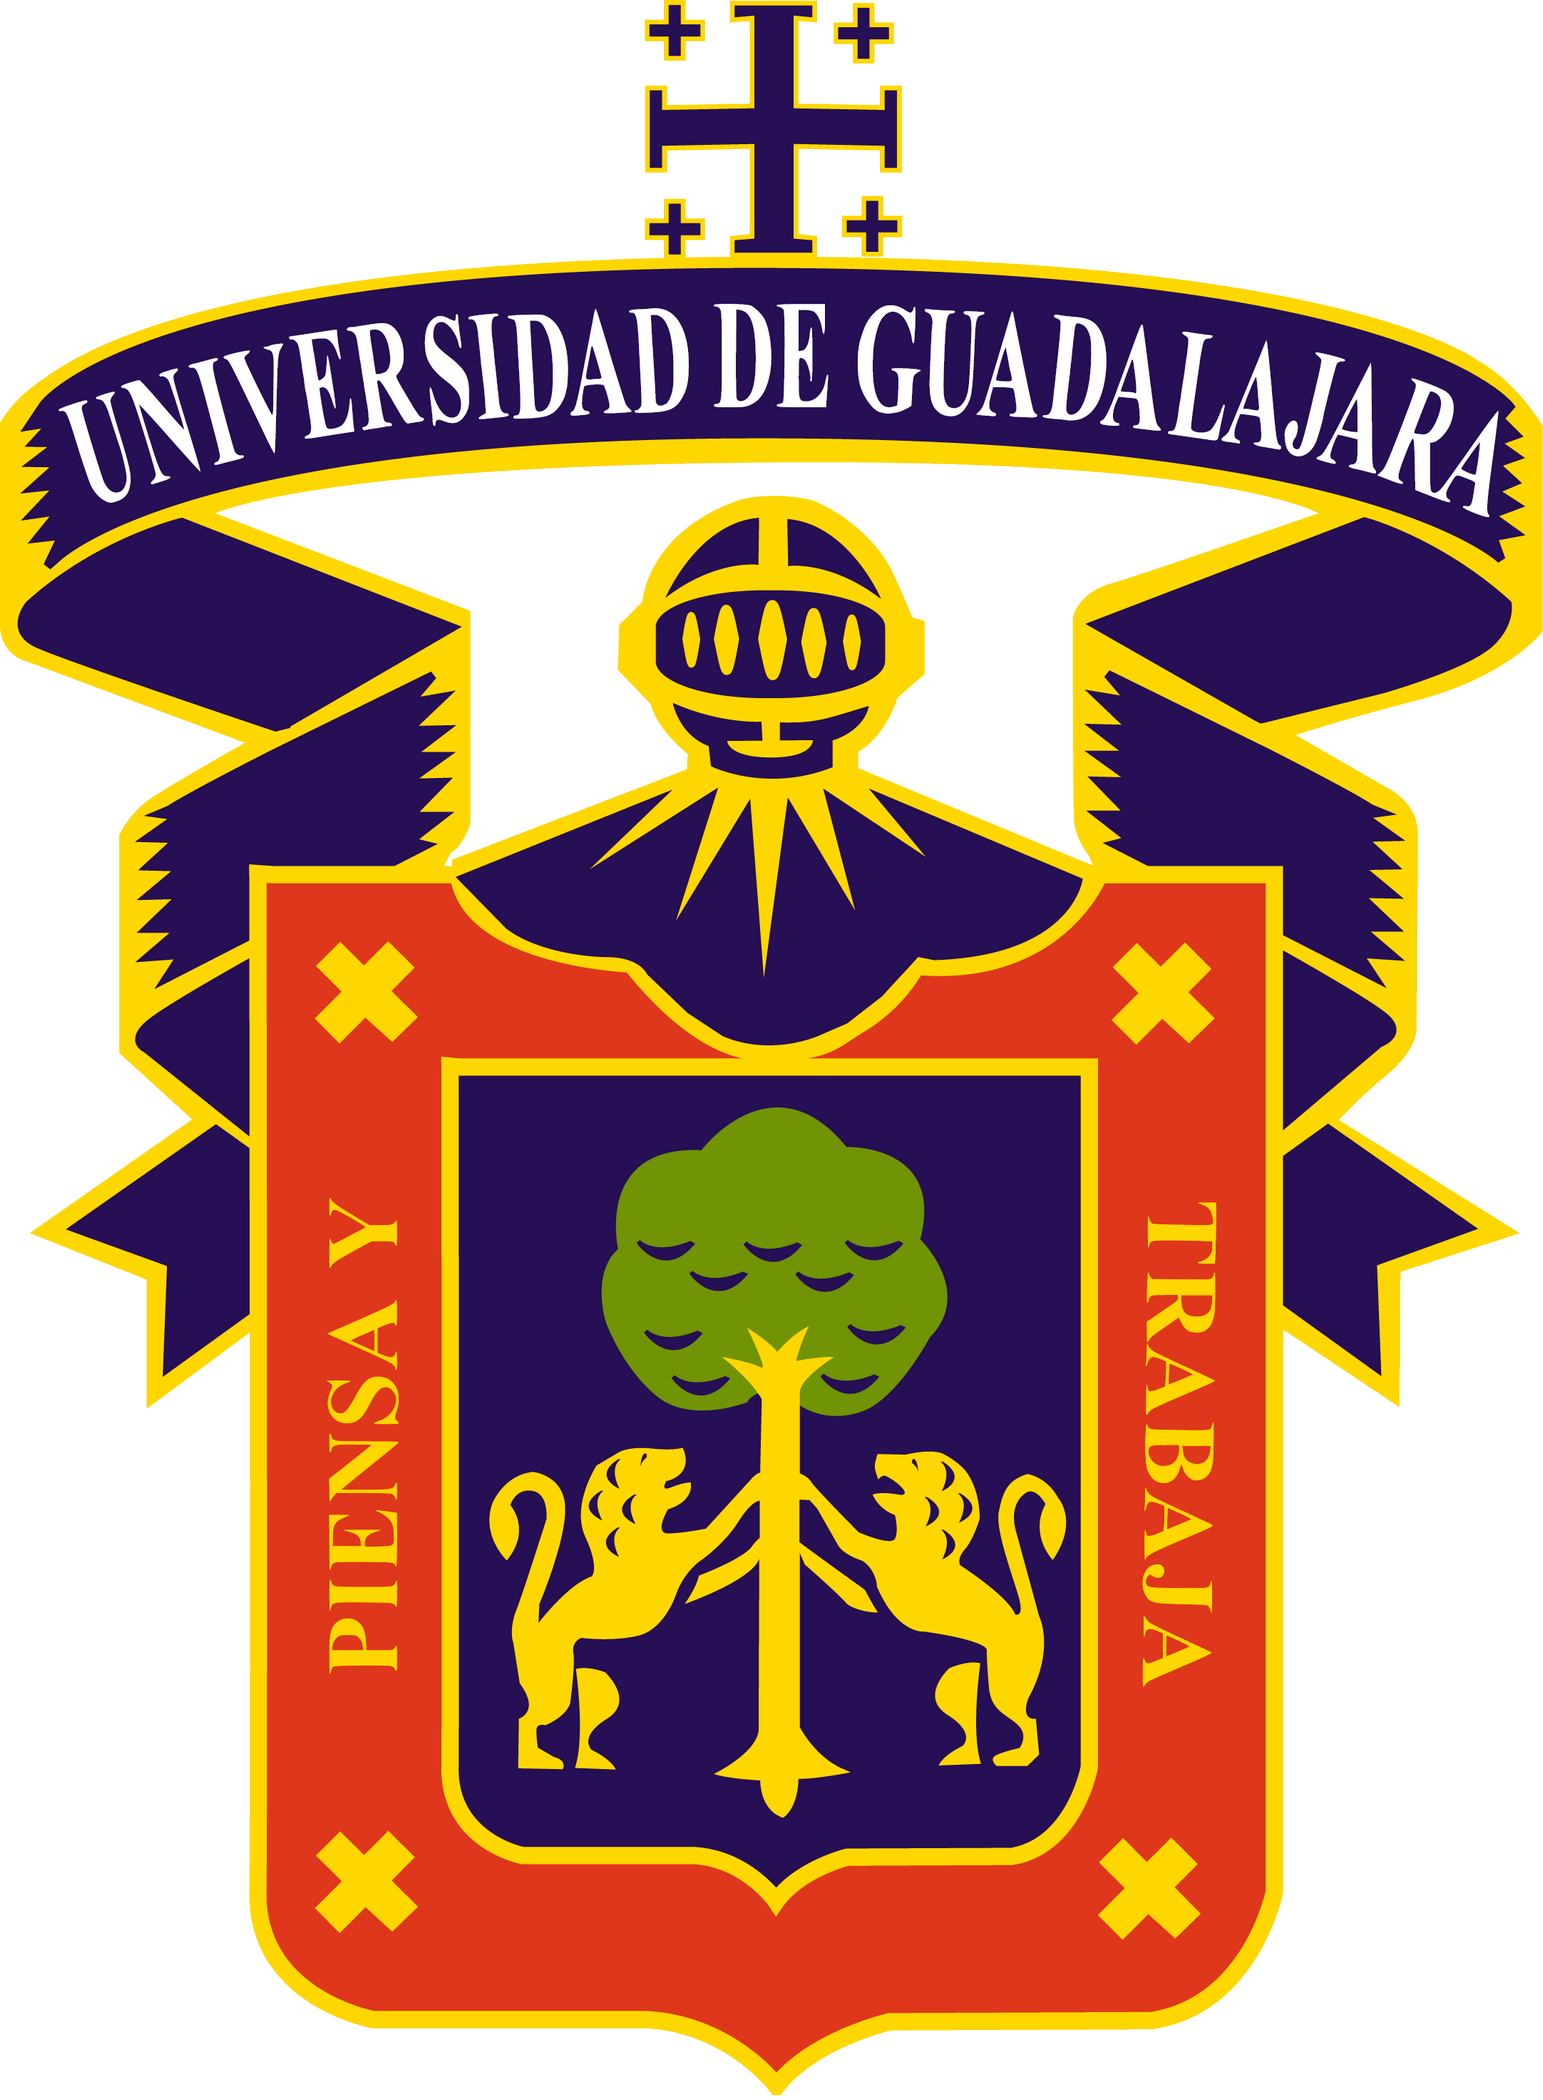 University of Guadalajara Logo logoeps.net